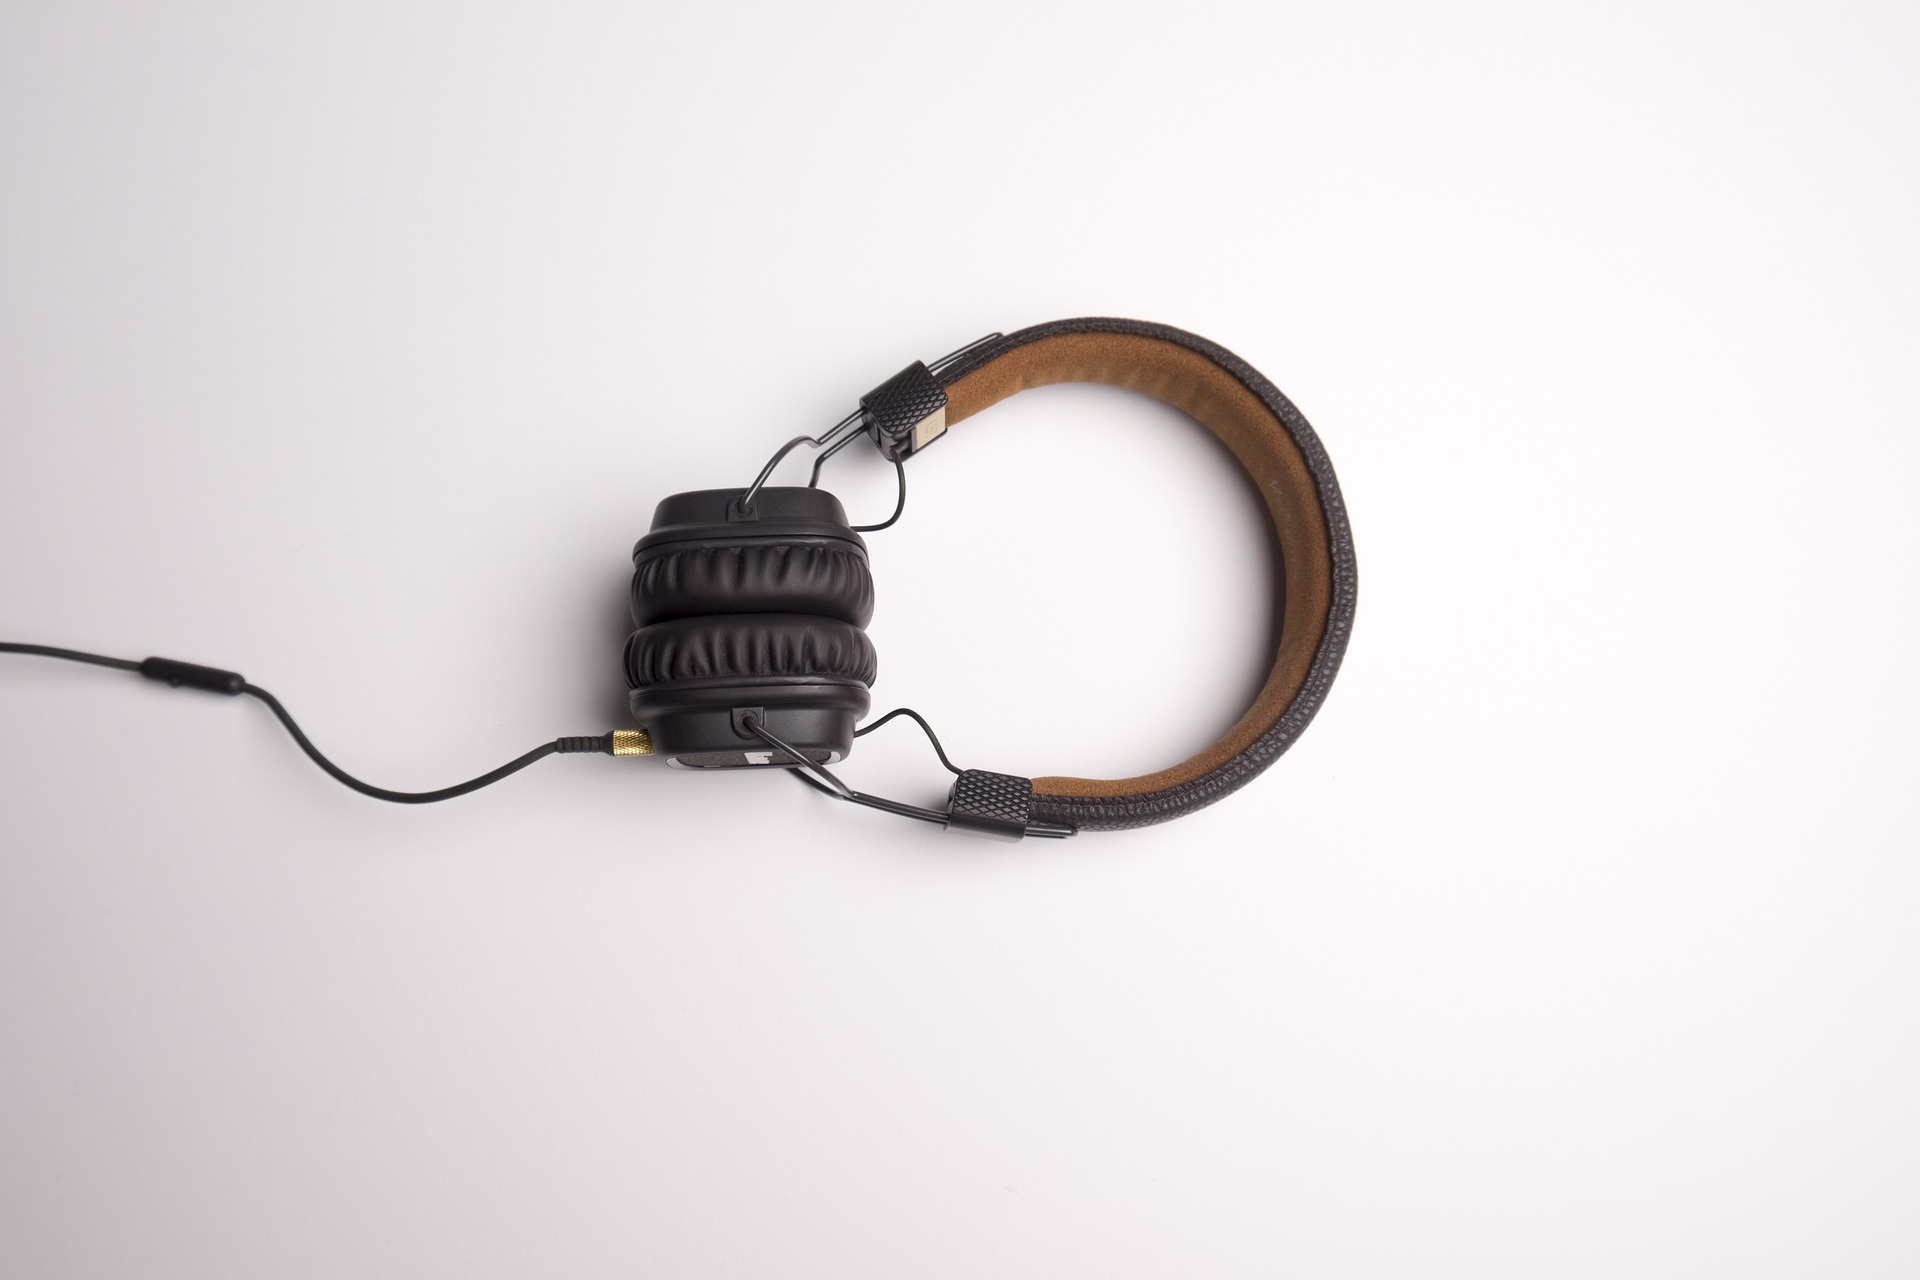 Headphone 1868612 1920